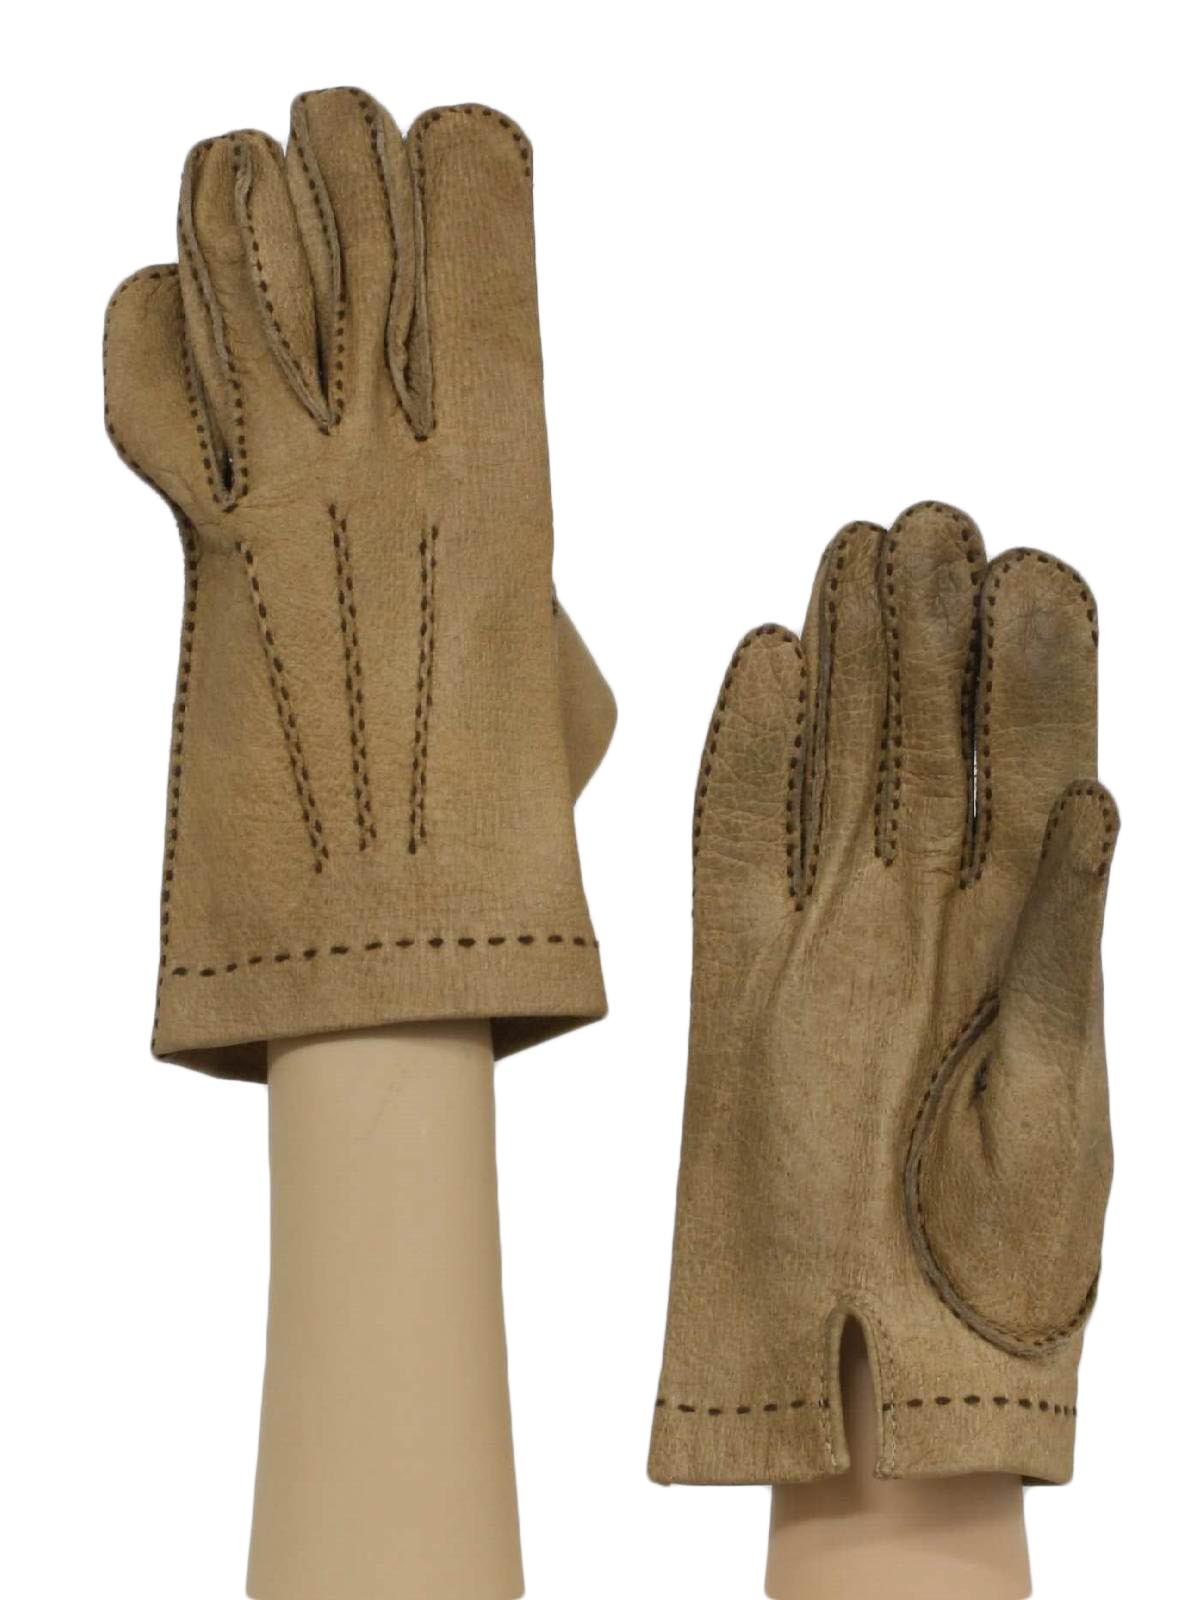 Vintage mens leather gloves - 1960s Vintage Gloves 60s No Label Mens Tan Pigskin Leather Dress Gloves With Decorative Topstitching Unlined Some Light Soiling